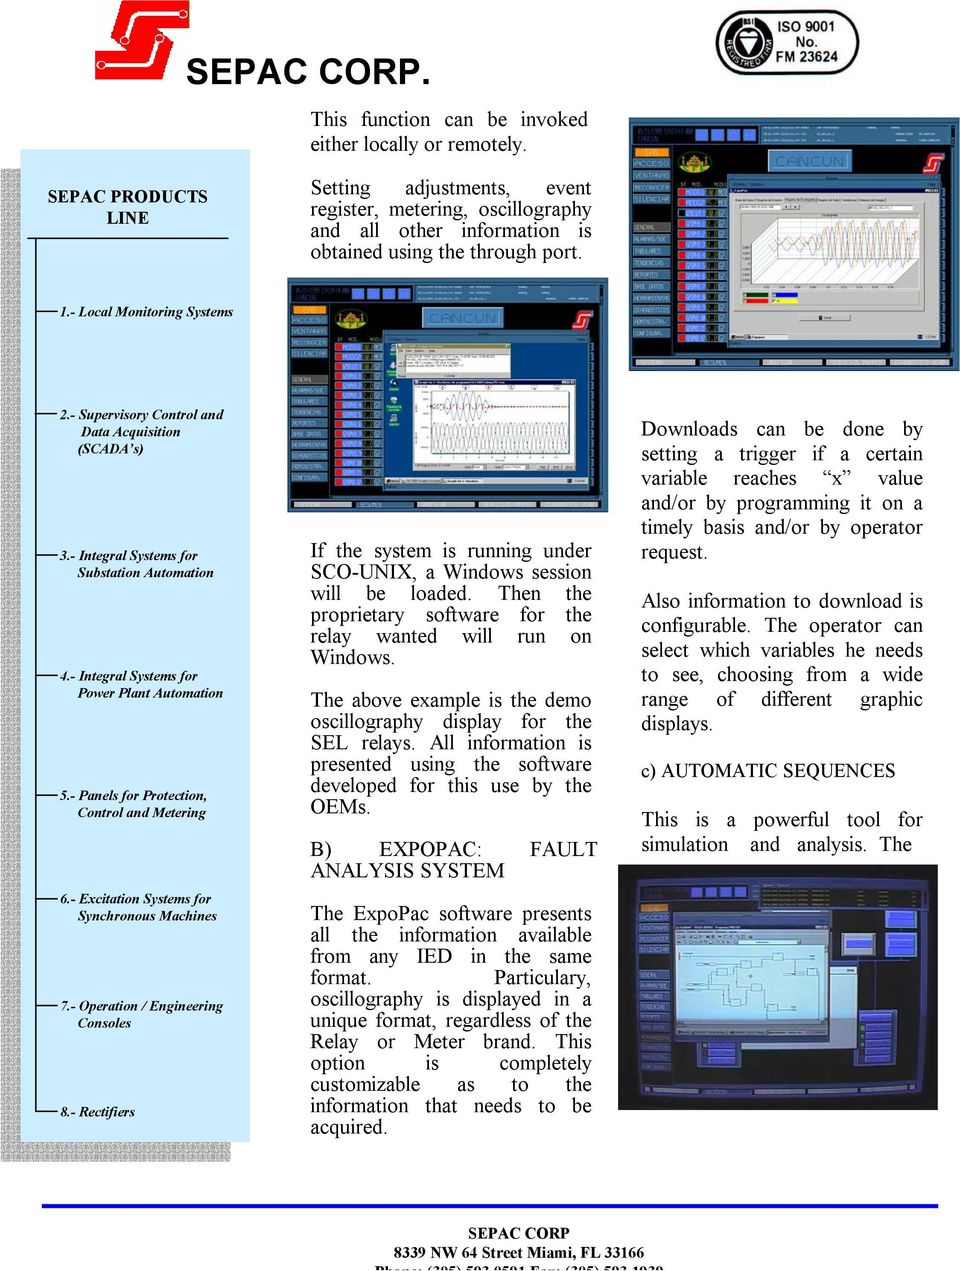 The above example is the demo oscillography display for the SEL relays. All information is presented using the software developed for this use by the OEMs.